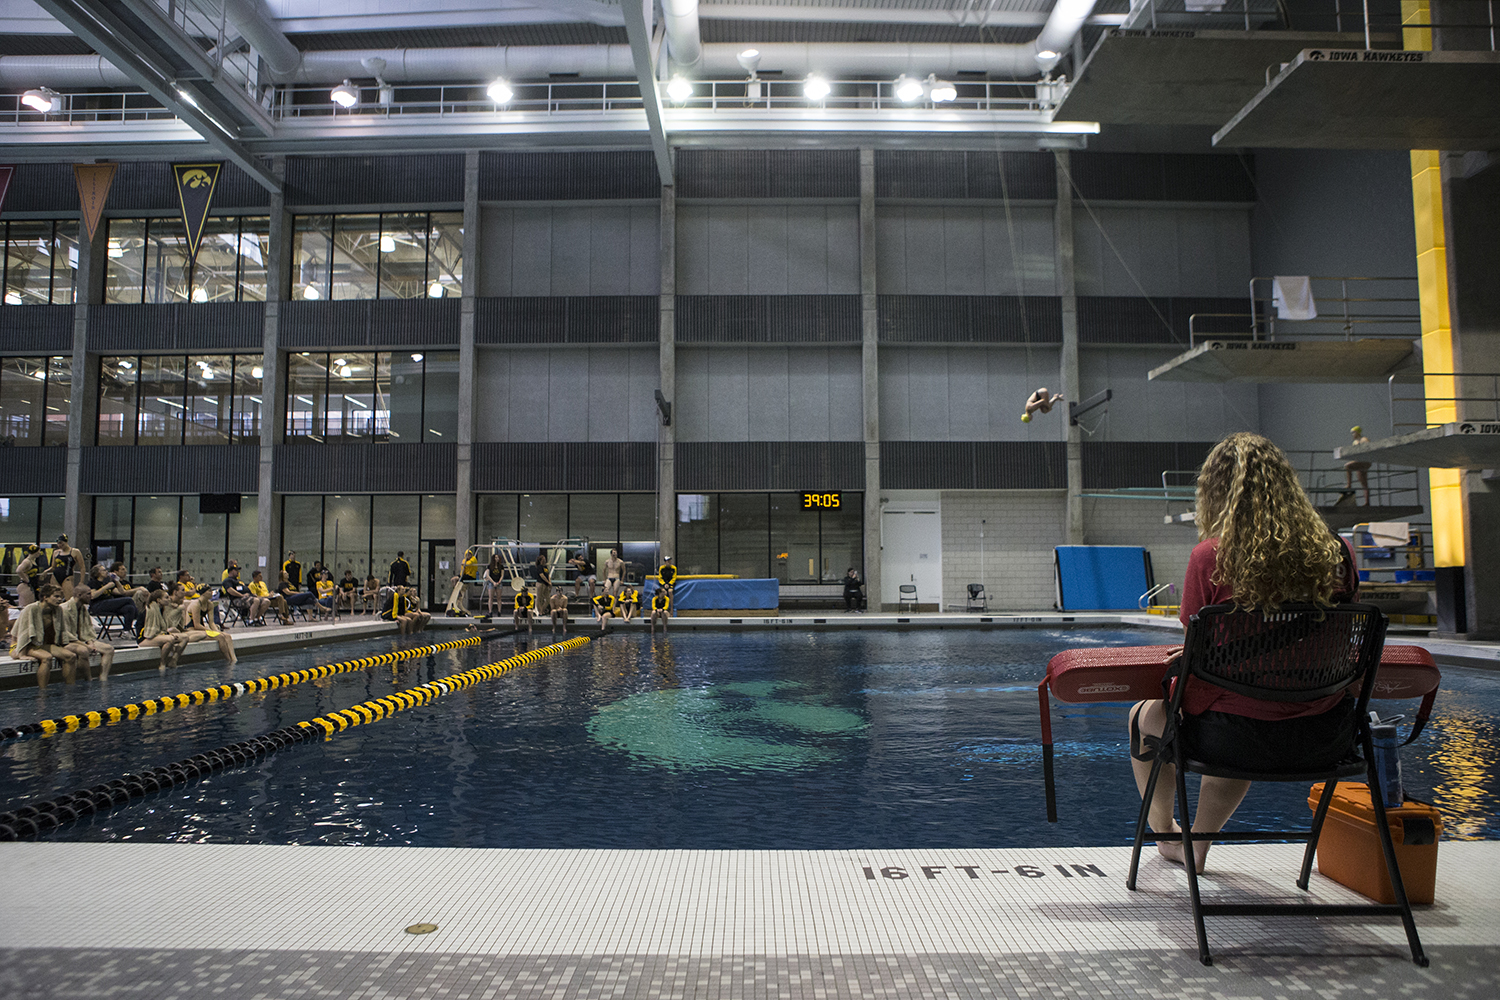 Claire+Park+jumps+off+the+beam+during+the+Iowa+Swimming+and+Diving+Intrasquad+Meet+at+the+Campus+Recreation+and+Wellness+Center+on+Saturday%2C+September+29%2C+2018.